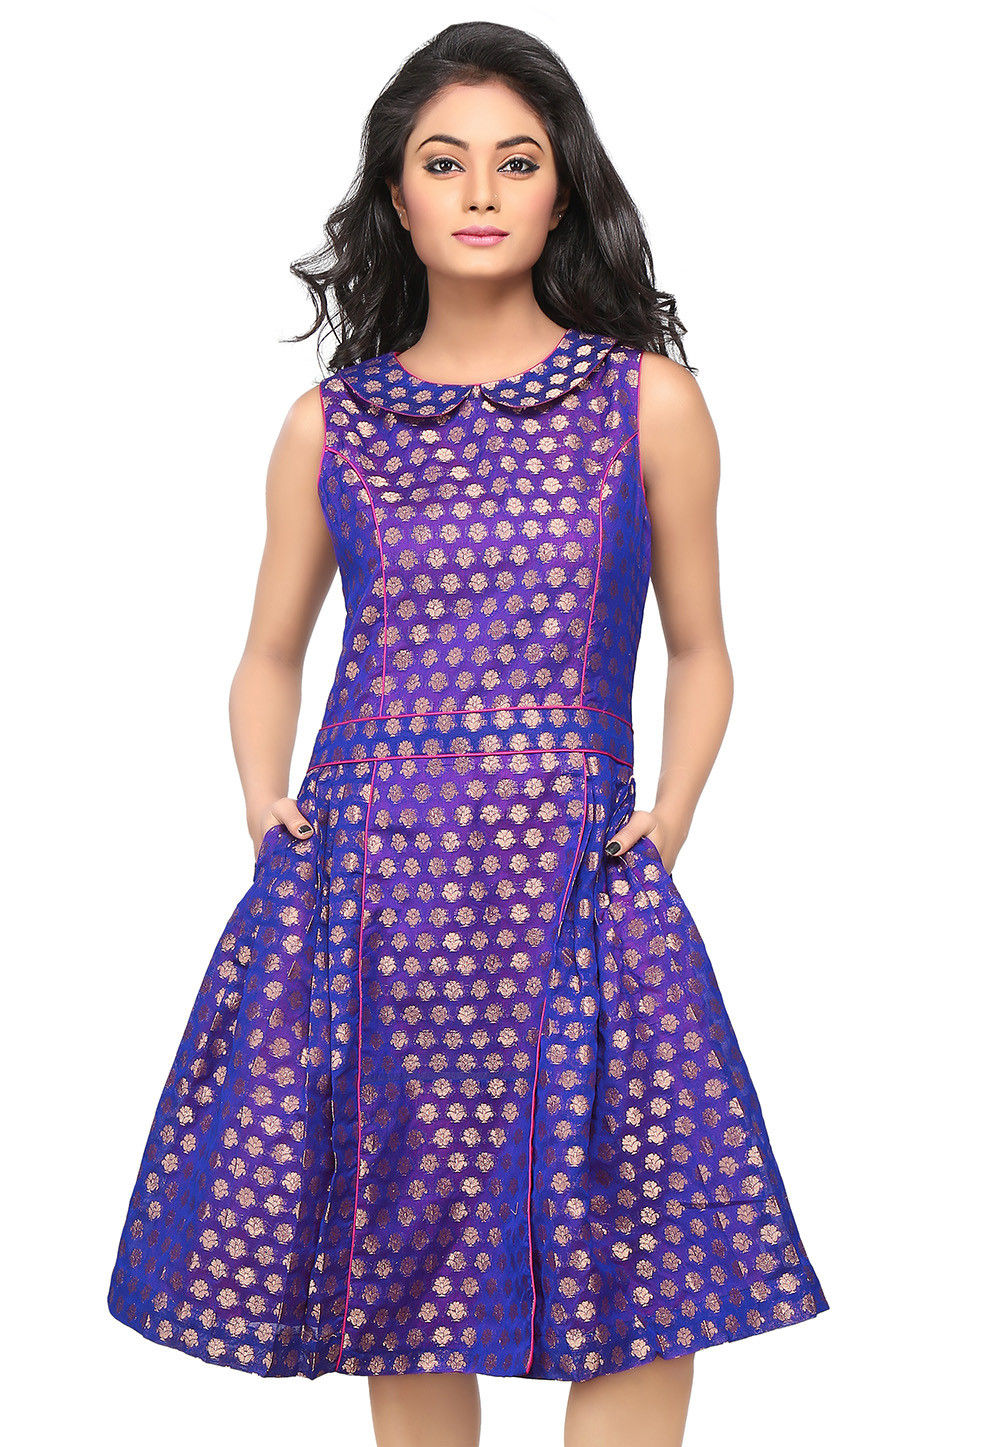 Jacquard Chanderi Silk A Line Dress in Royal Blue